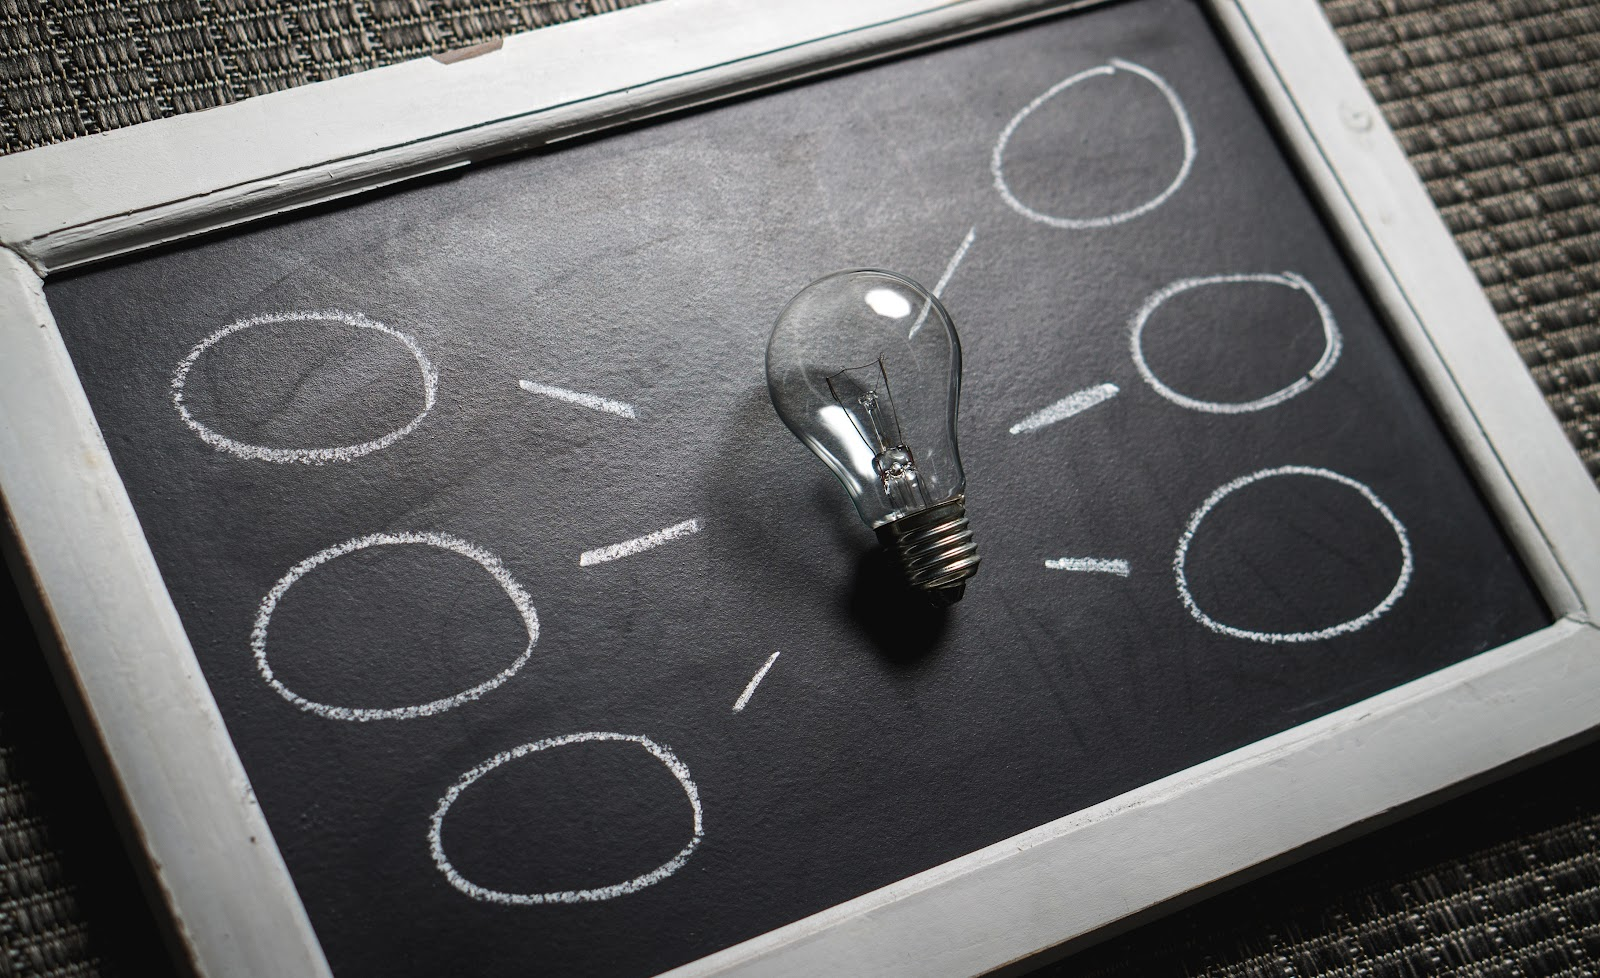 This is an image of a lightbulb on a chalkboard with several blank idea bubbles stemming from it. This is how planning your STEM vision might look like, a bright idea, with supporting goals.